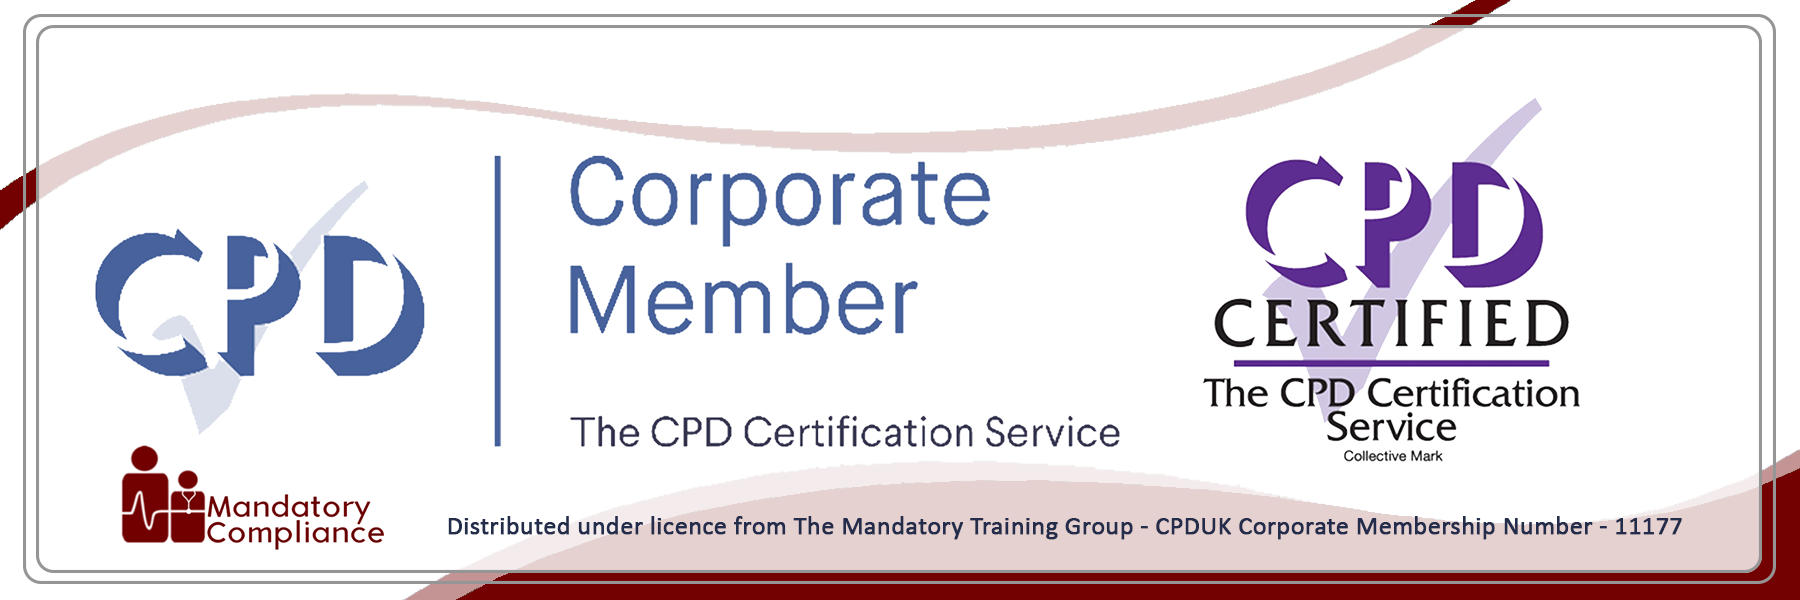 Fire Marshal Training – Level 3 - Online Training Course - CPDUK Accredited - Mandatory Compliance UK -